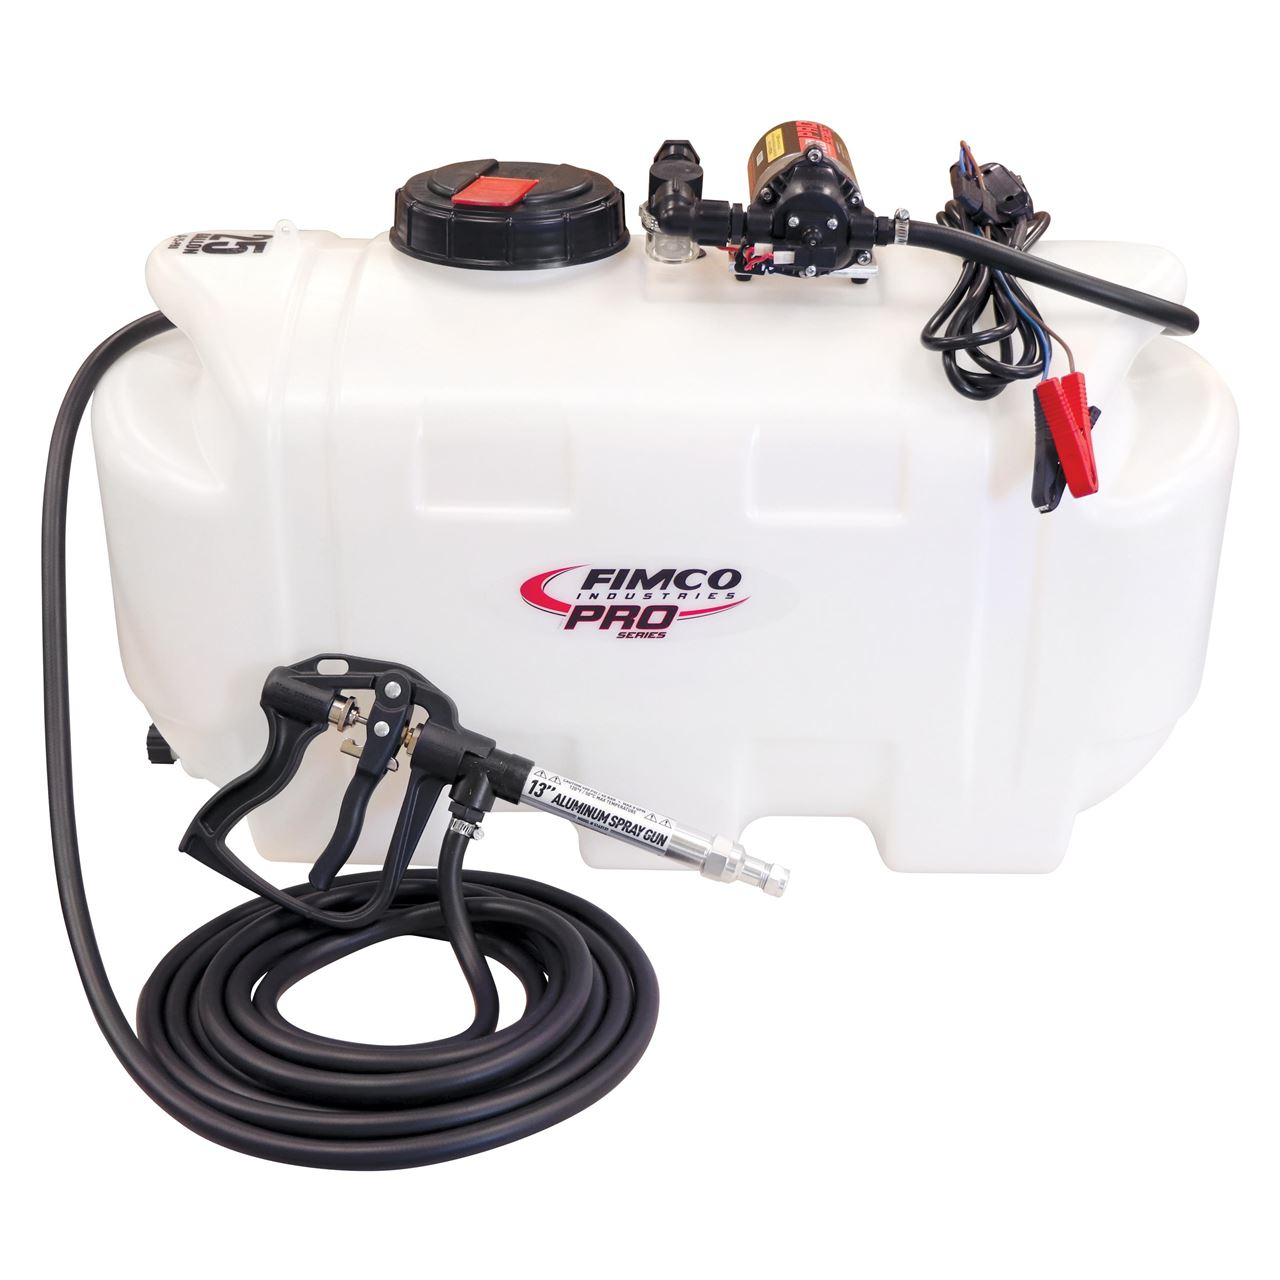 Spot Sprayer Cheaper Than Retail Price Buy Clothing Accessories And Lifestyle Products For Women Men